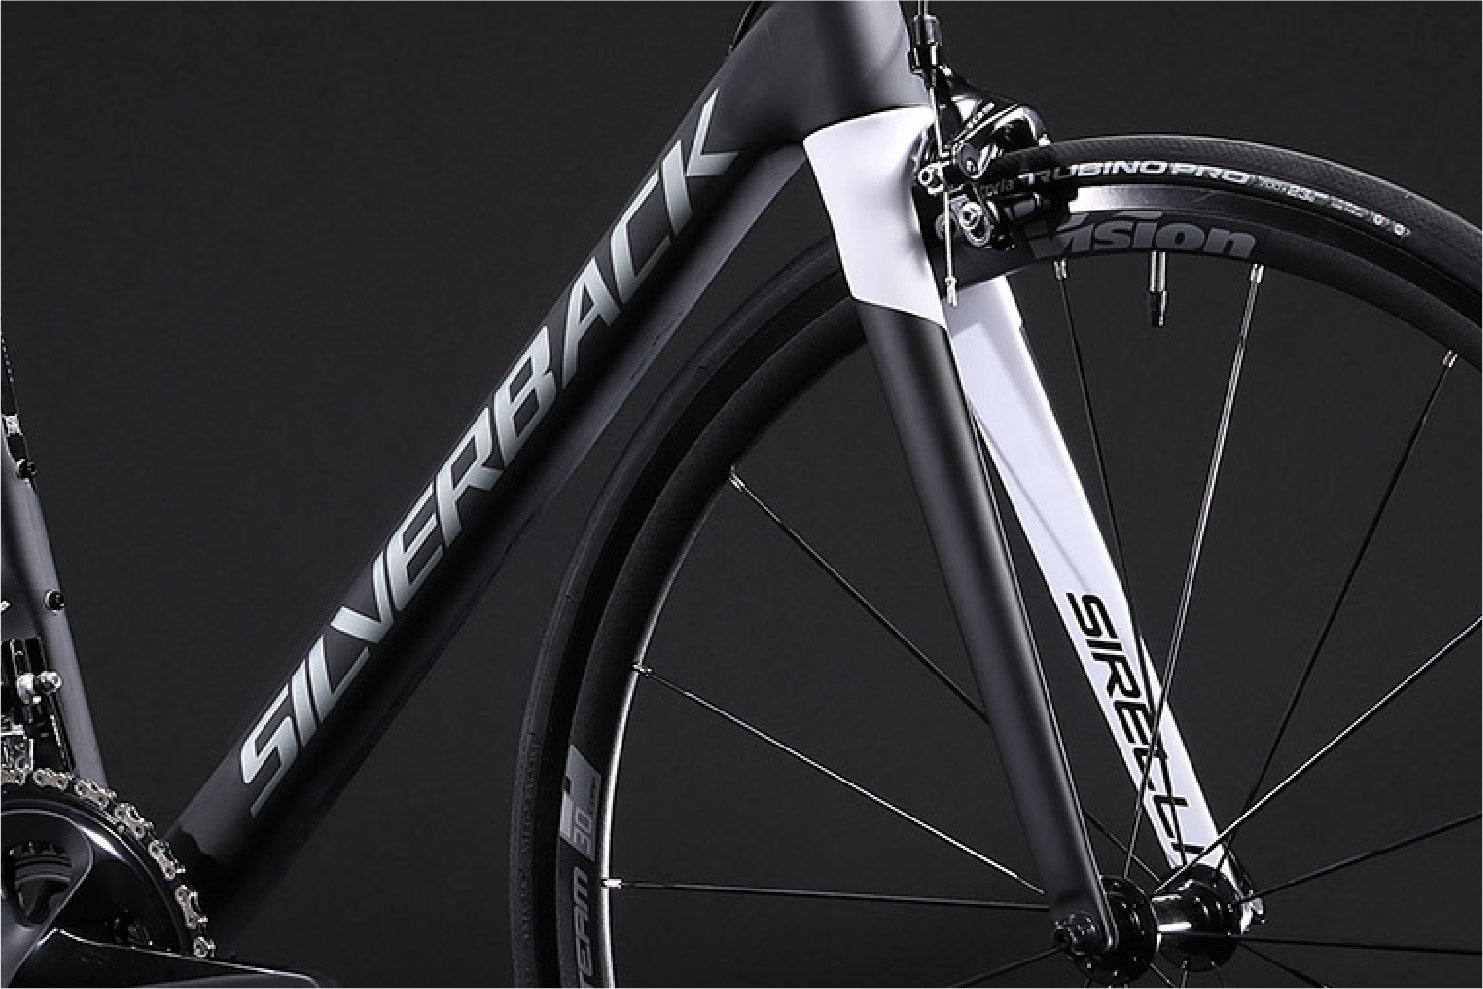 https://cdn.shopify.com/s/files/1/0082/4128/3143/files/sirelli-2-tech-highlight-1-speedlab..jpg?v=1596785463 . Silverback Sirelli 1 Road Bike